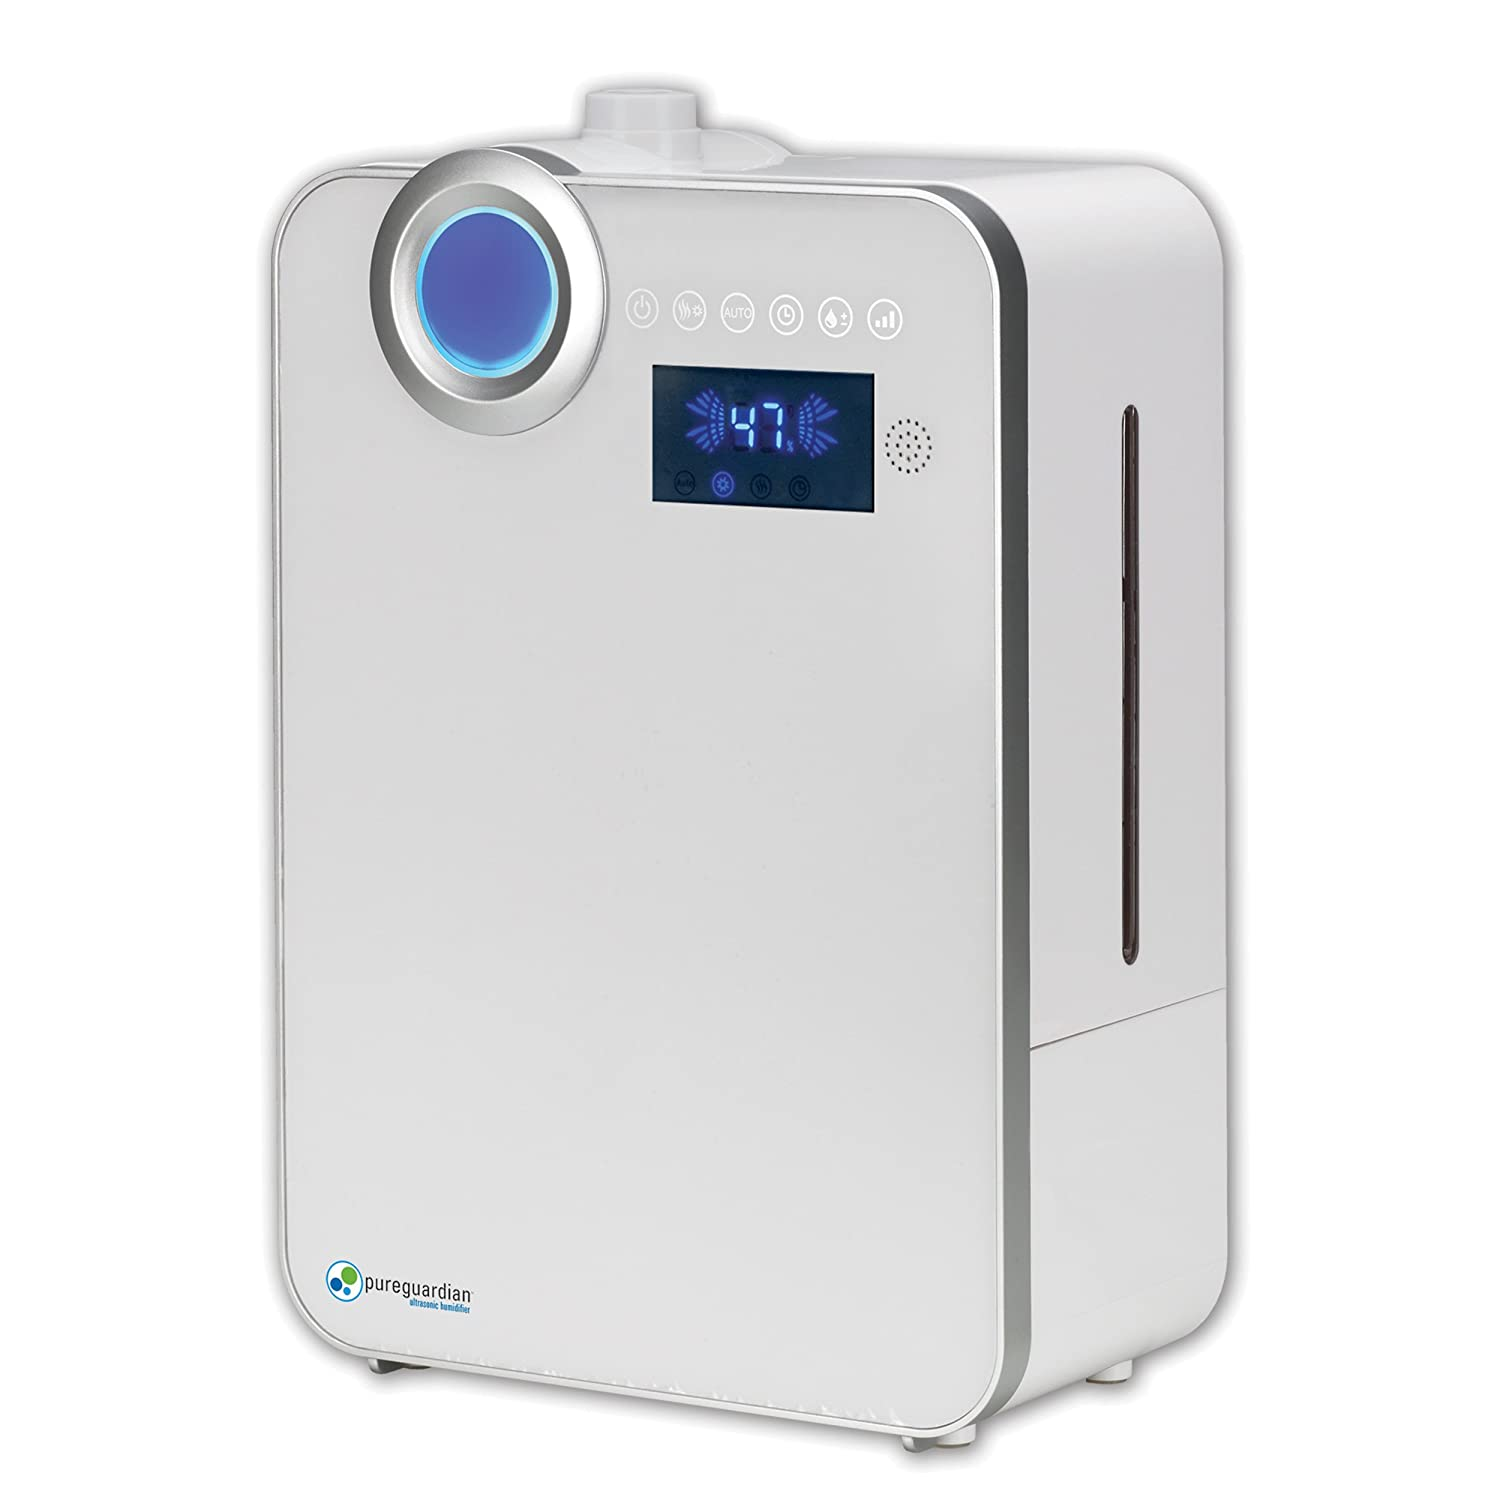 PureGuardian 12.5L Output per Day Ultrasonic Warm and Cool Mist Humidifier, Large Room, Home, Office, Easy Quiet Operation, Digital Display, Auto Humidistat, Timer, Auto Shut-Off, Pure Guardian H7550 GUAT7